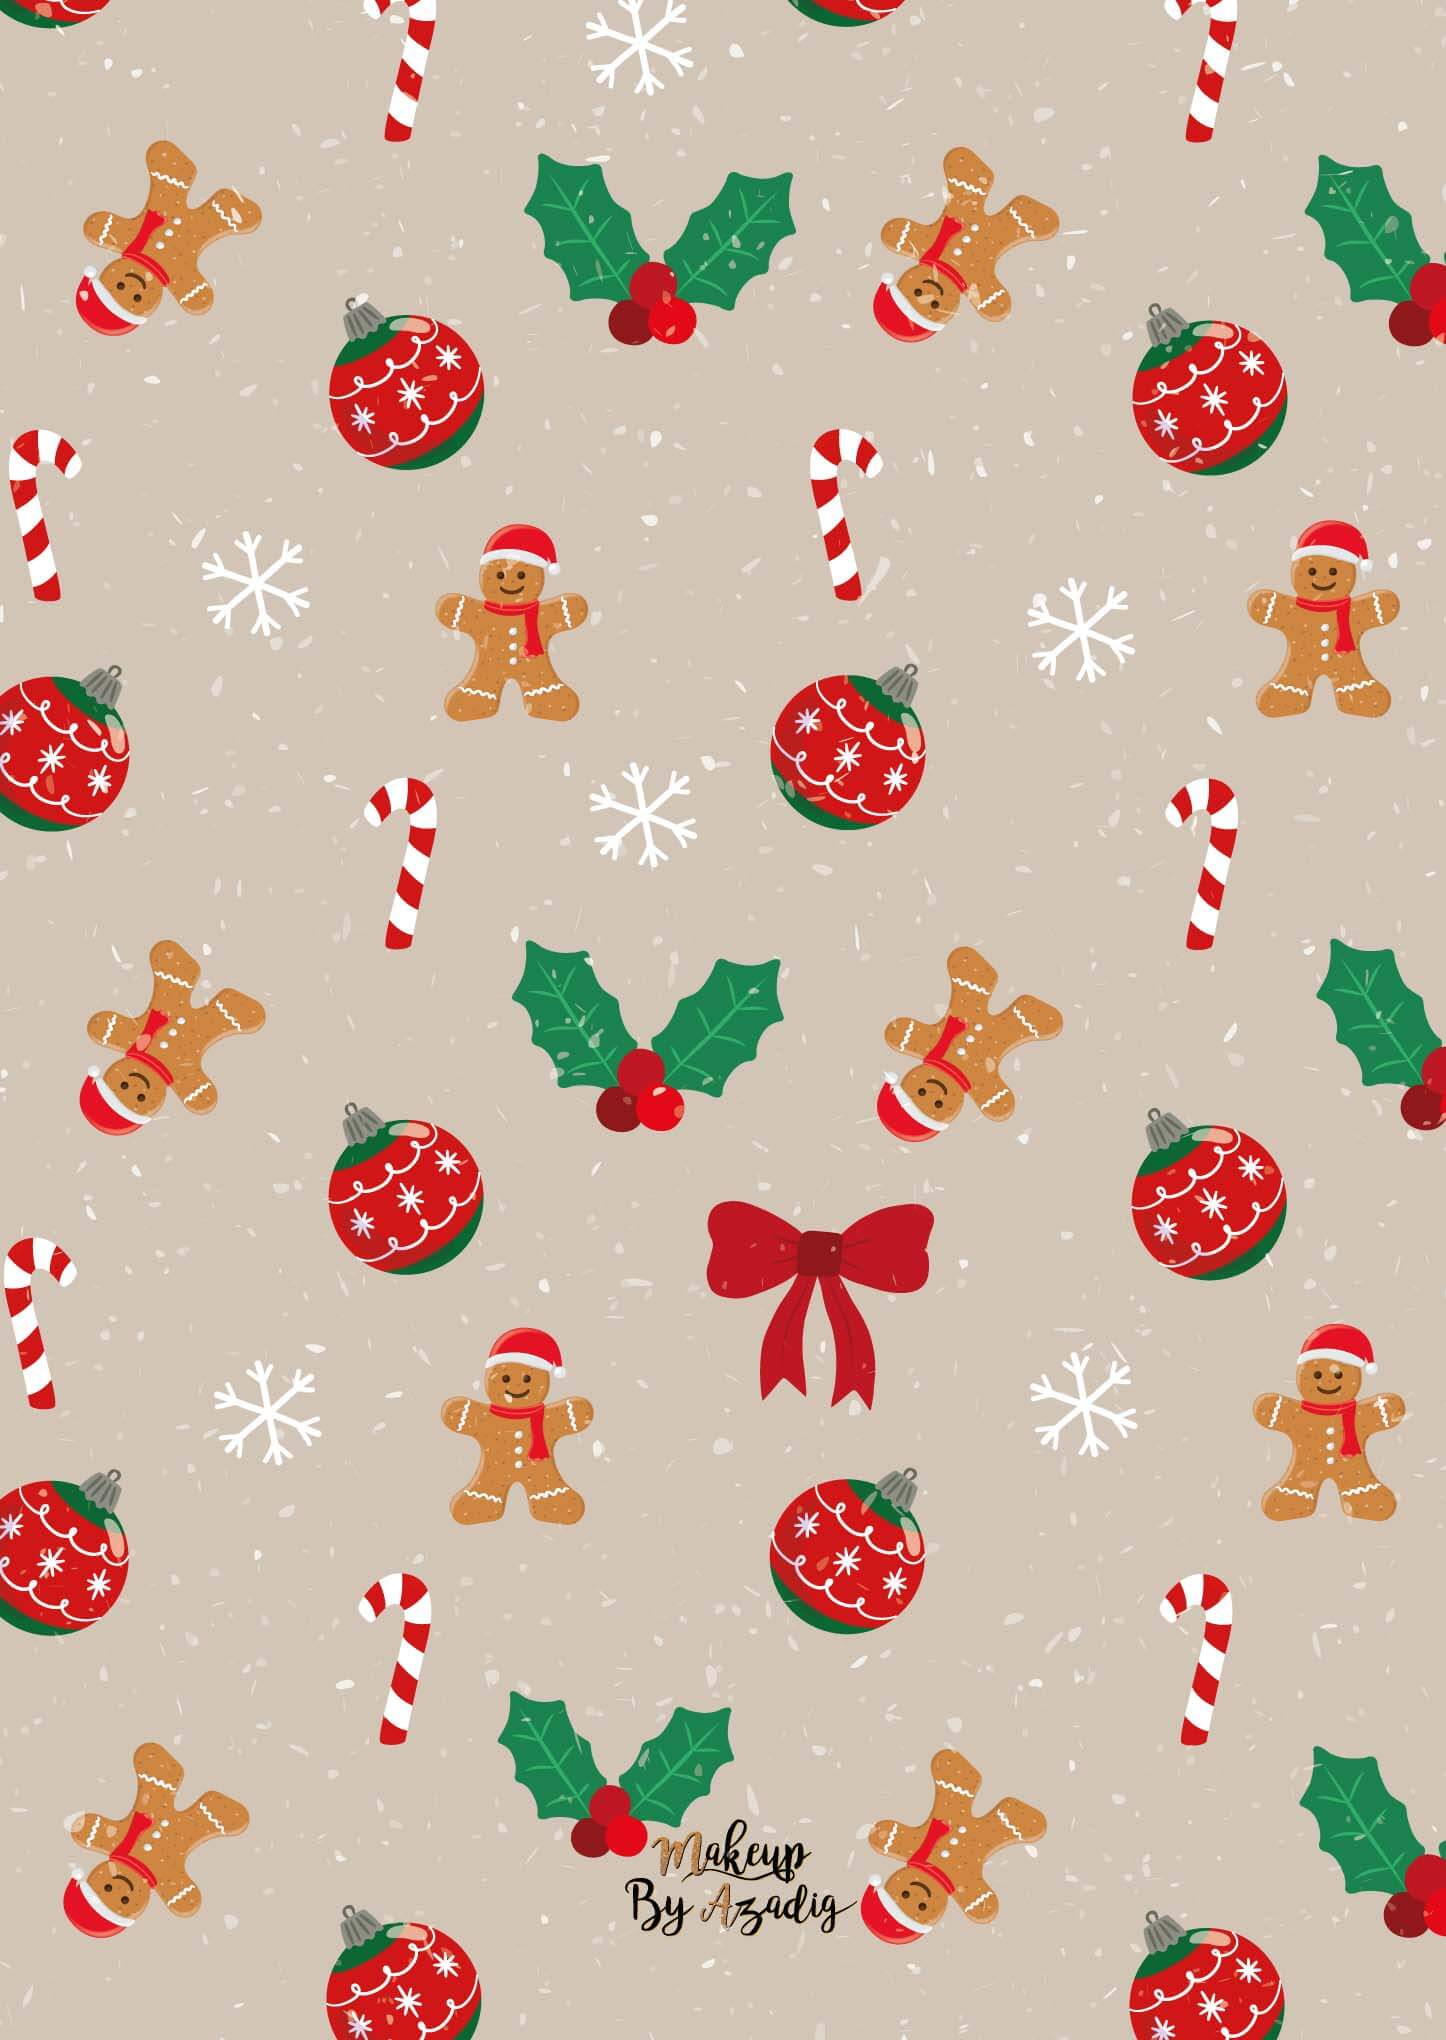 fond-decran-wallpaper-christmas-noel-elements-gingerbread-houx-decoration-december-ipad-tablette-apple-makeupbyazadig-tendance